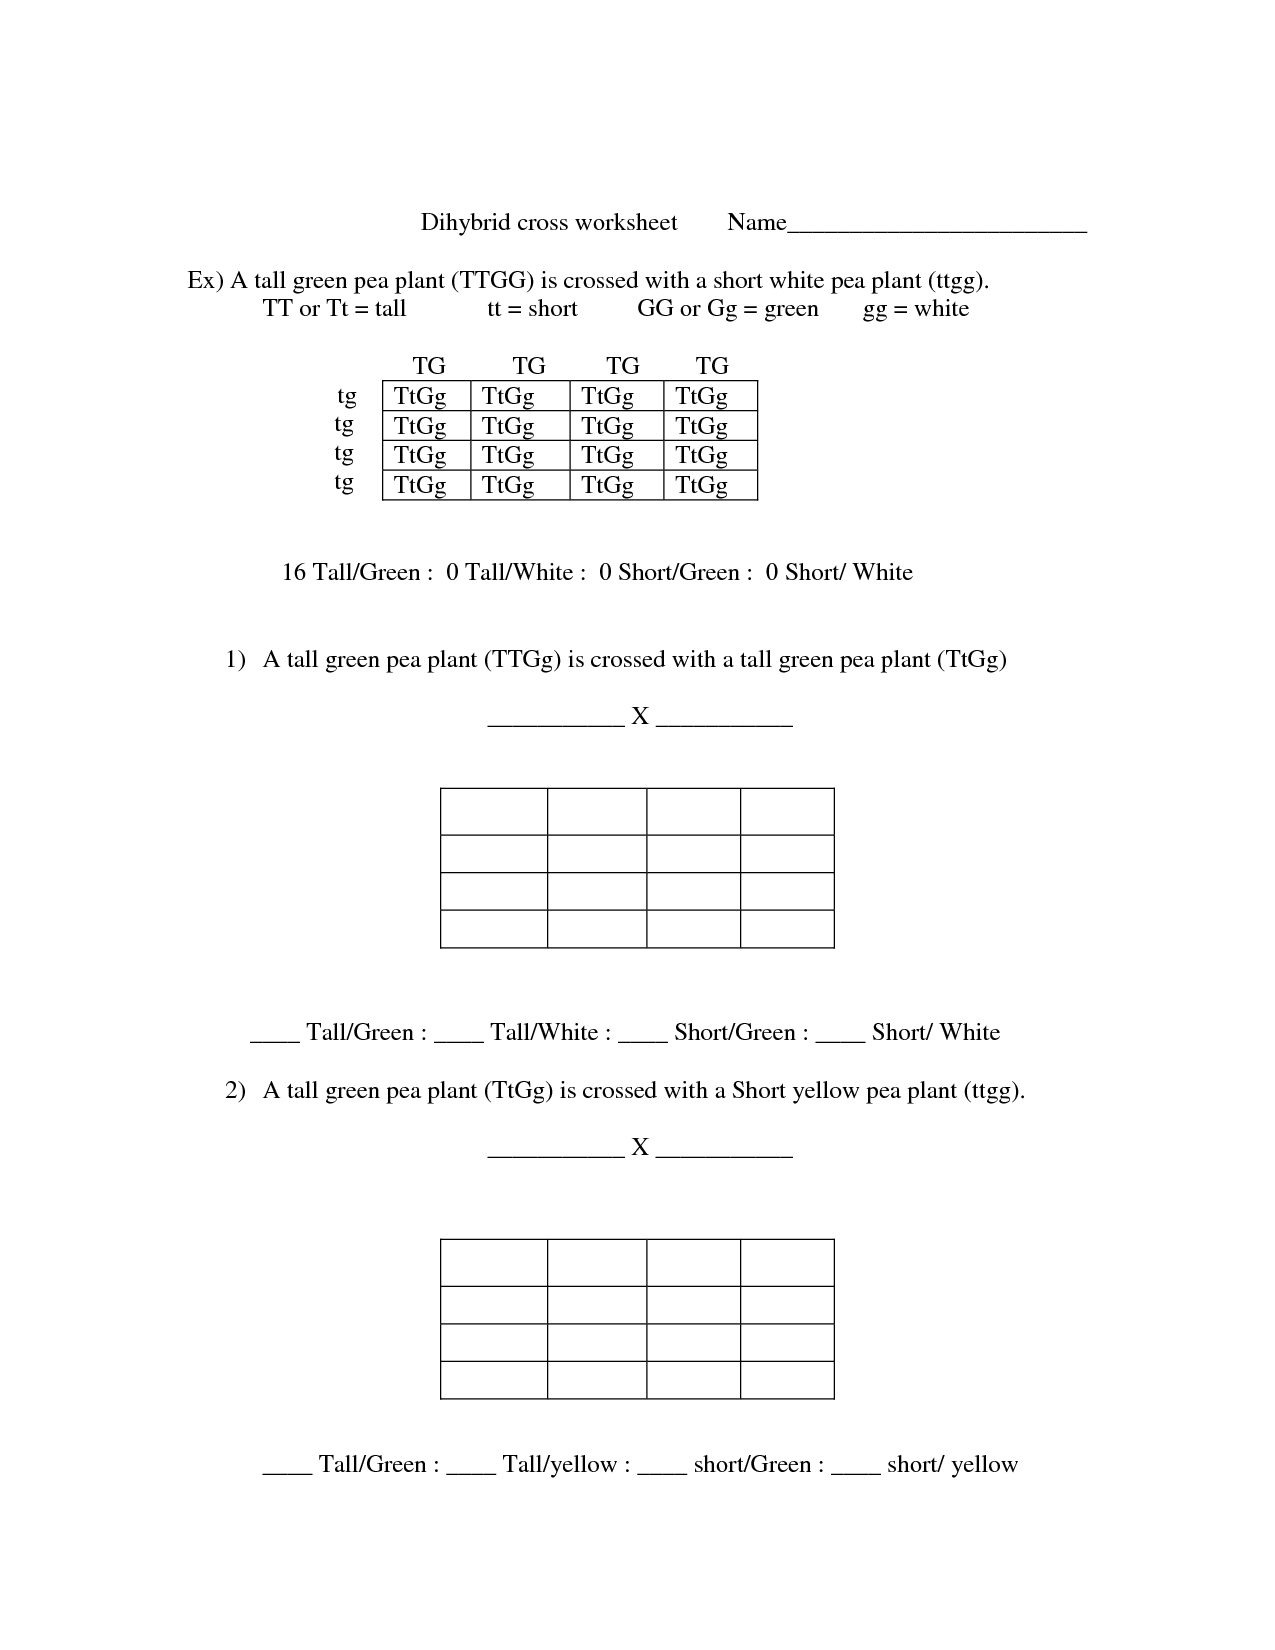 Worksheet Dihybrid Cross Worksheet Answer Key Worksheet